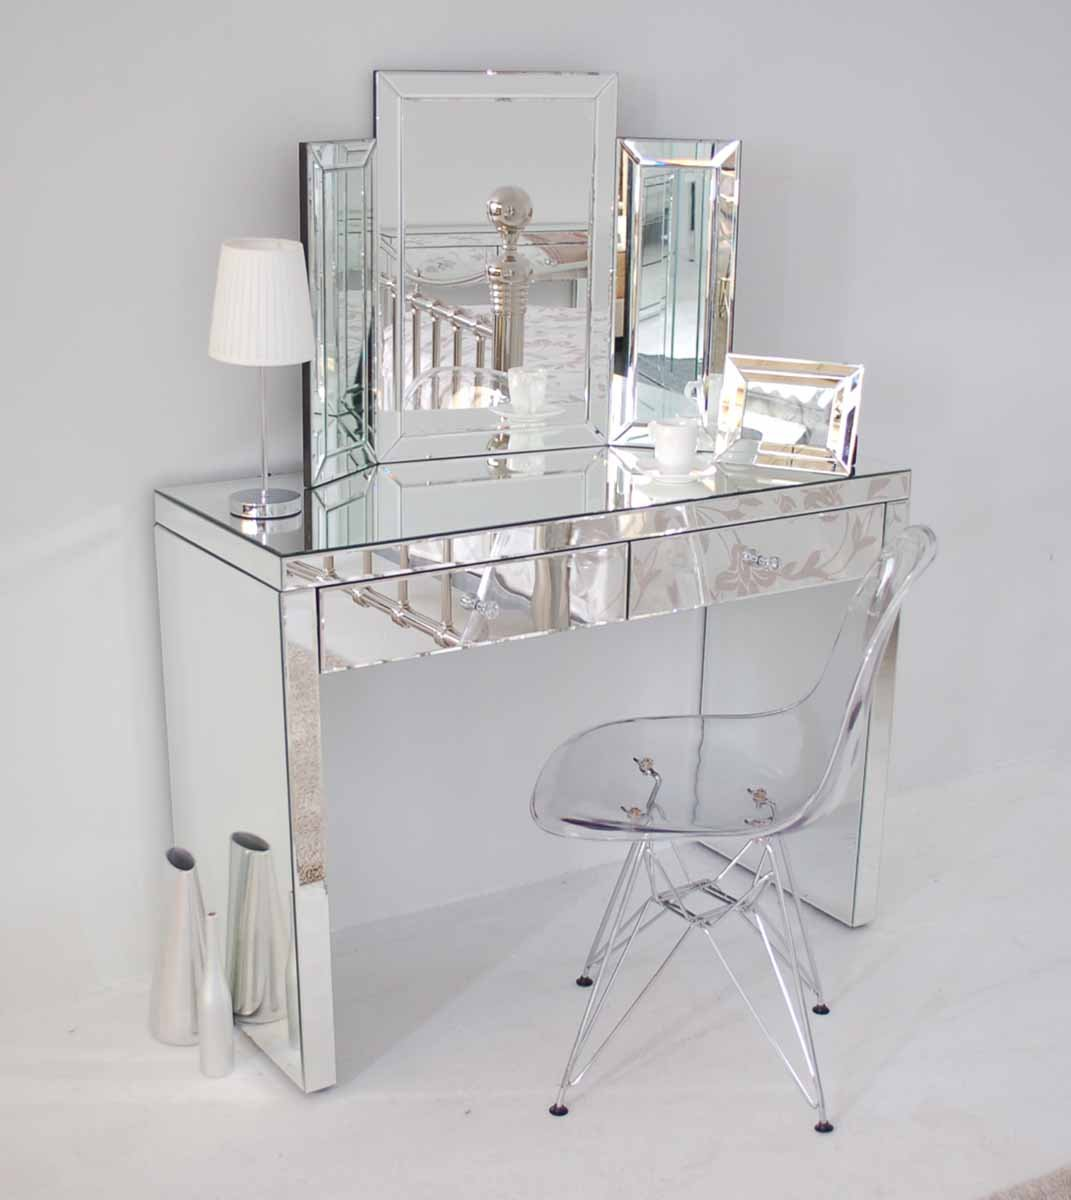 Glass dressing table - My Furniture Venetian Mirrored Dressing Table Aphrodite Amazon Co Uk Kitchen Home